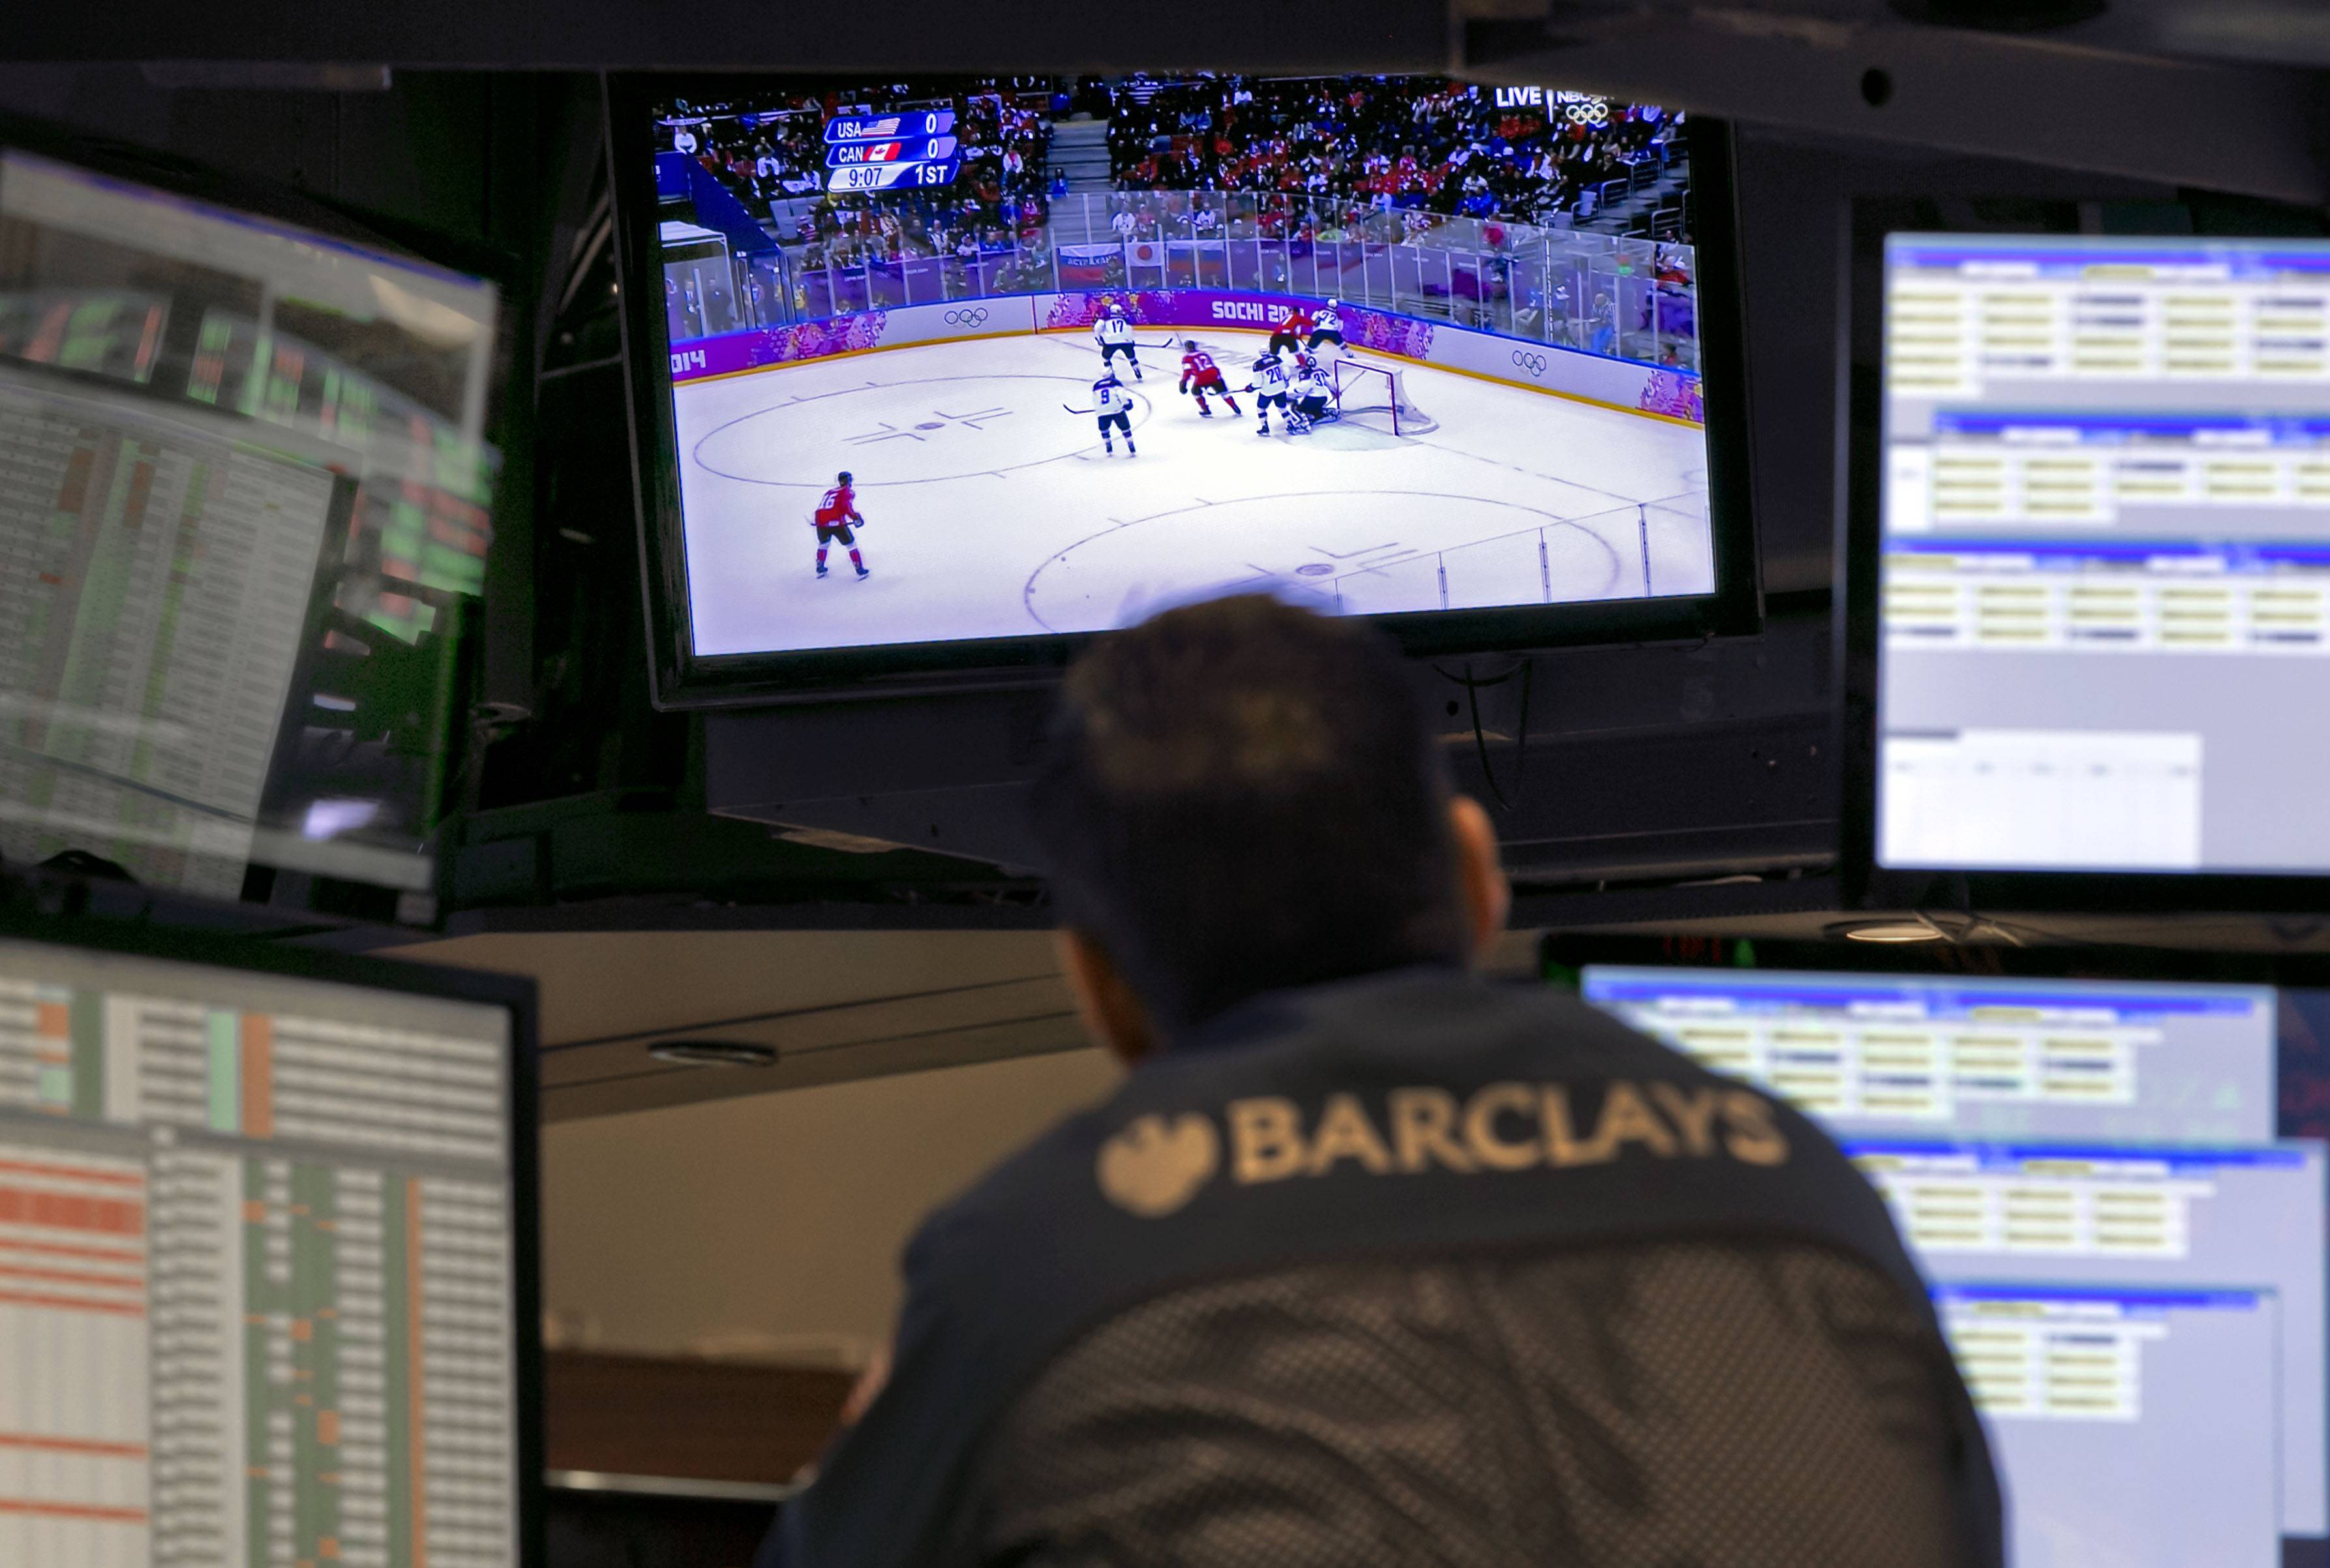 A specialist on the floor of the New York Stock Exchange watches the first period of the Winter Olympics ice hockey game Friday between USA and Canada.